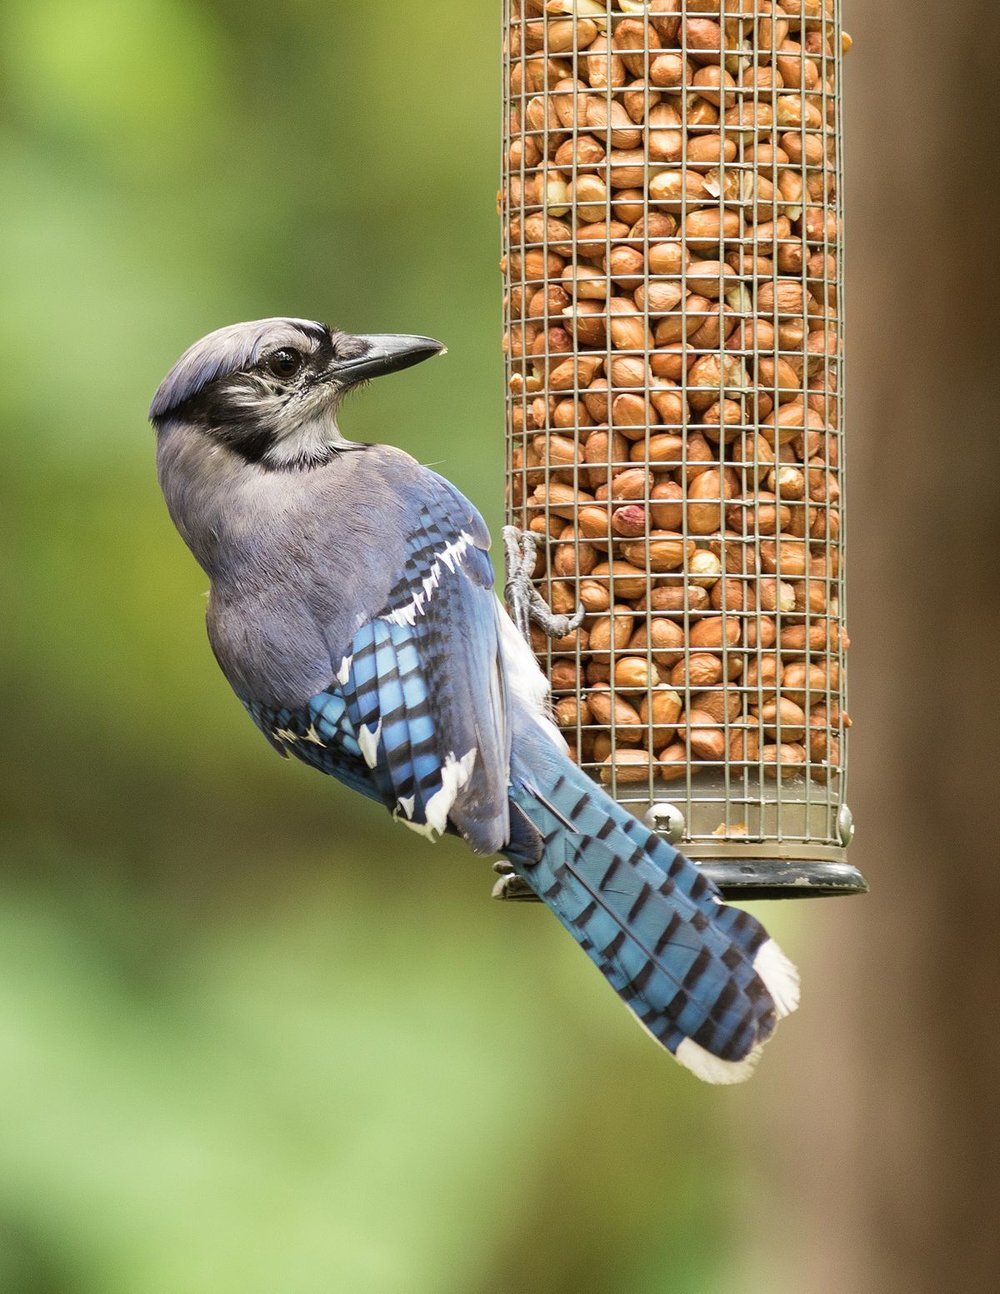 Blue_jay_(Cyanocitta_cristata)_on_bird_feeder.jpg